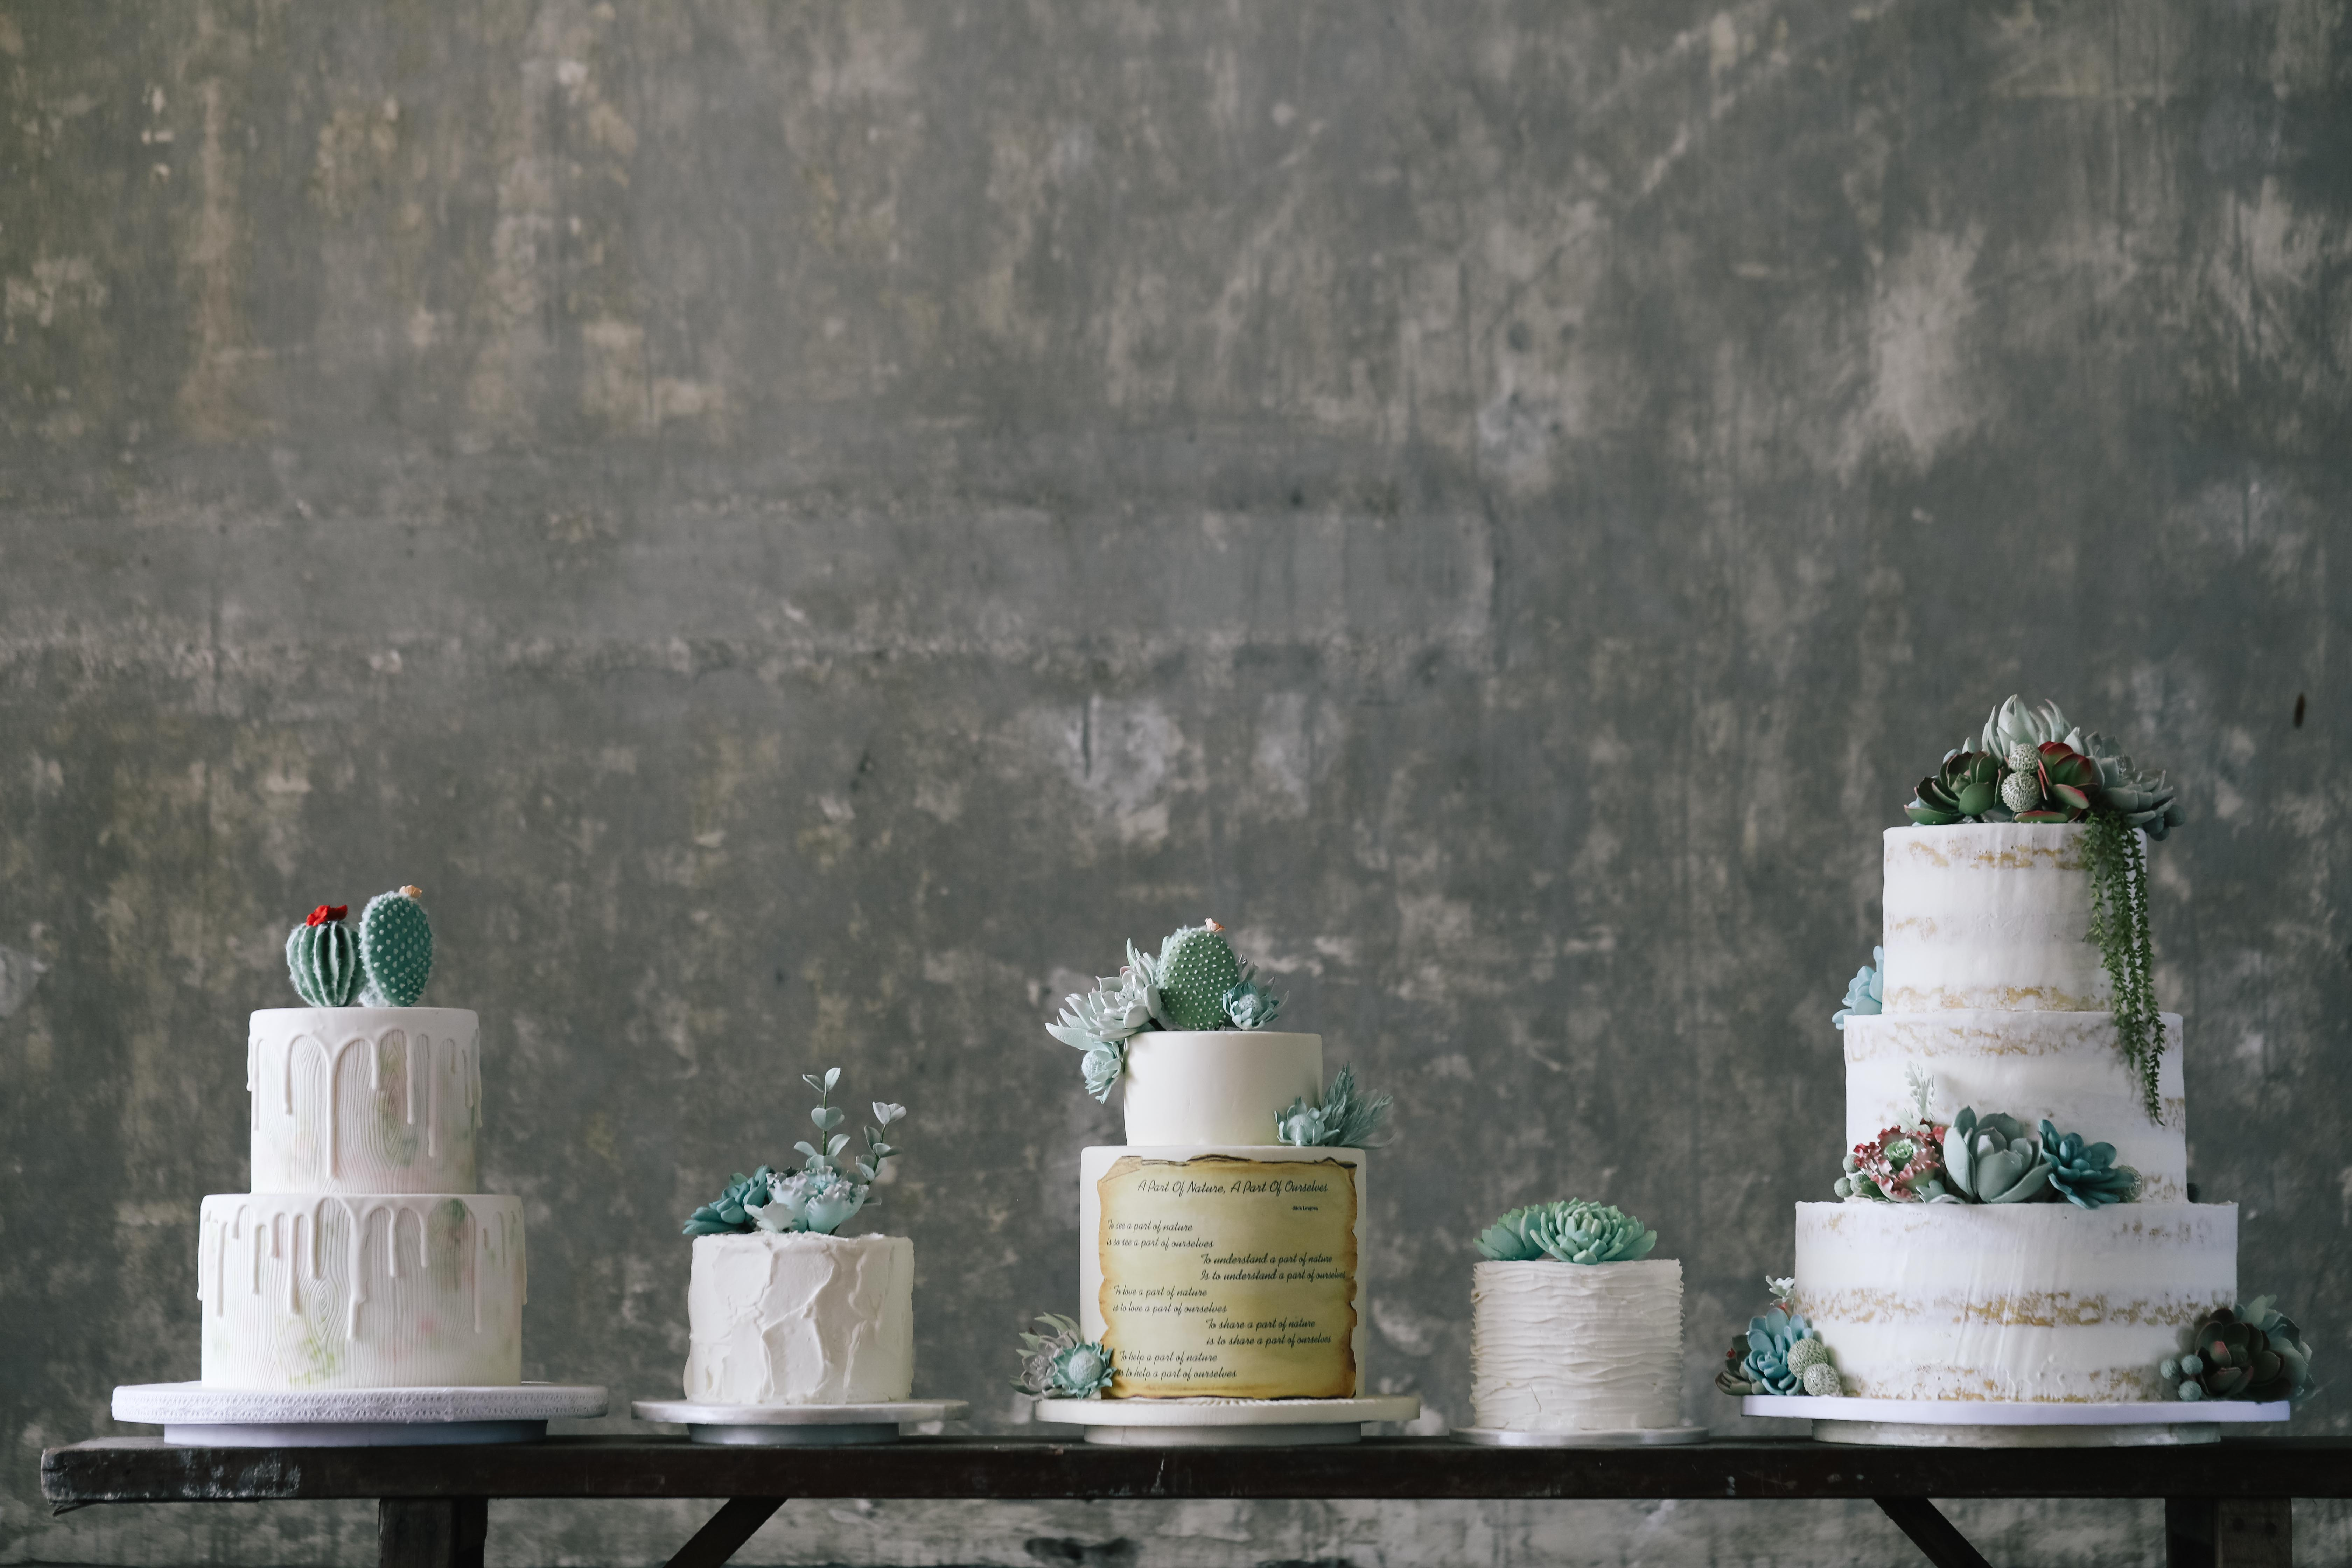 4 wedding cake decoration ideas for a personalized wedding wedding cakes hold several important roles in a wedding celebration delectable dessert pretty decoration as well as a symbol of fortune and good luck biocorpaavc Image collections